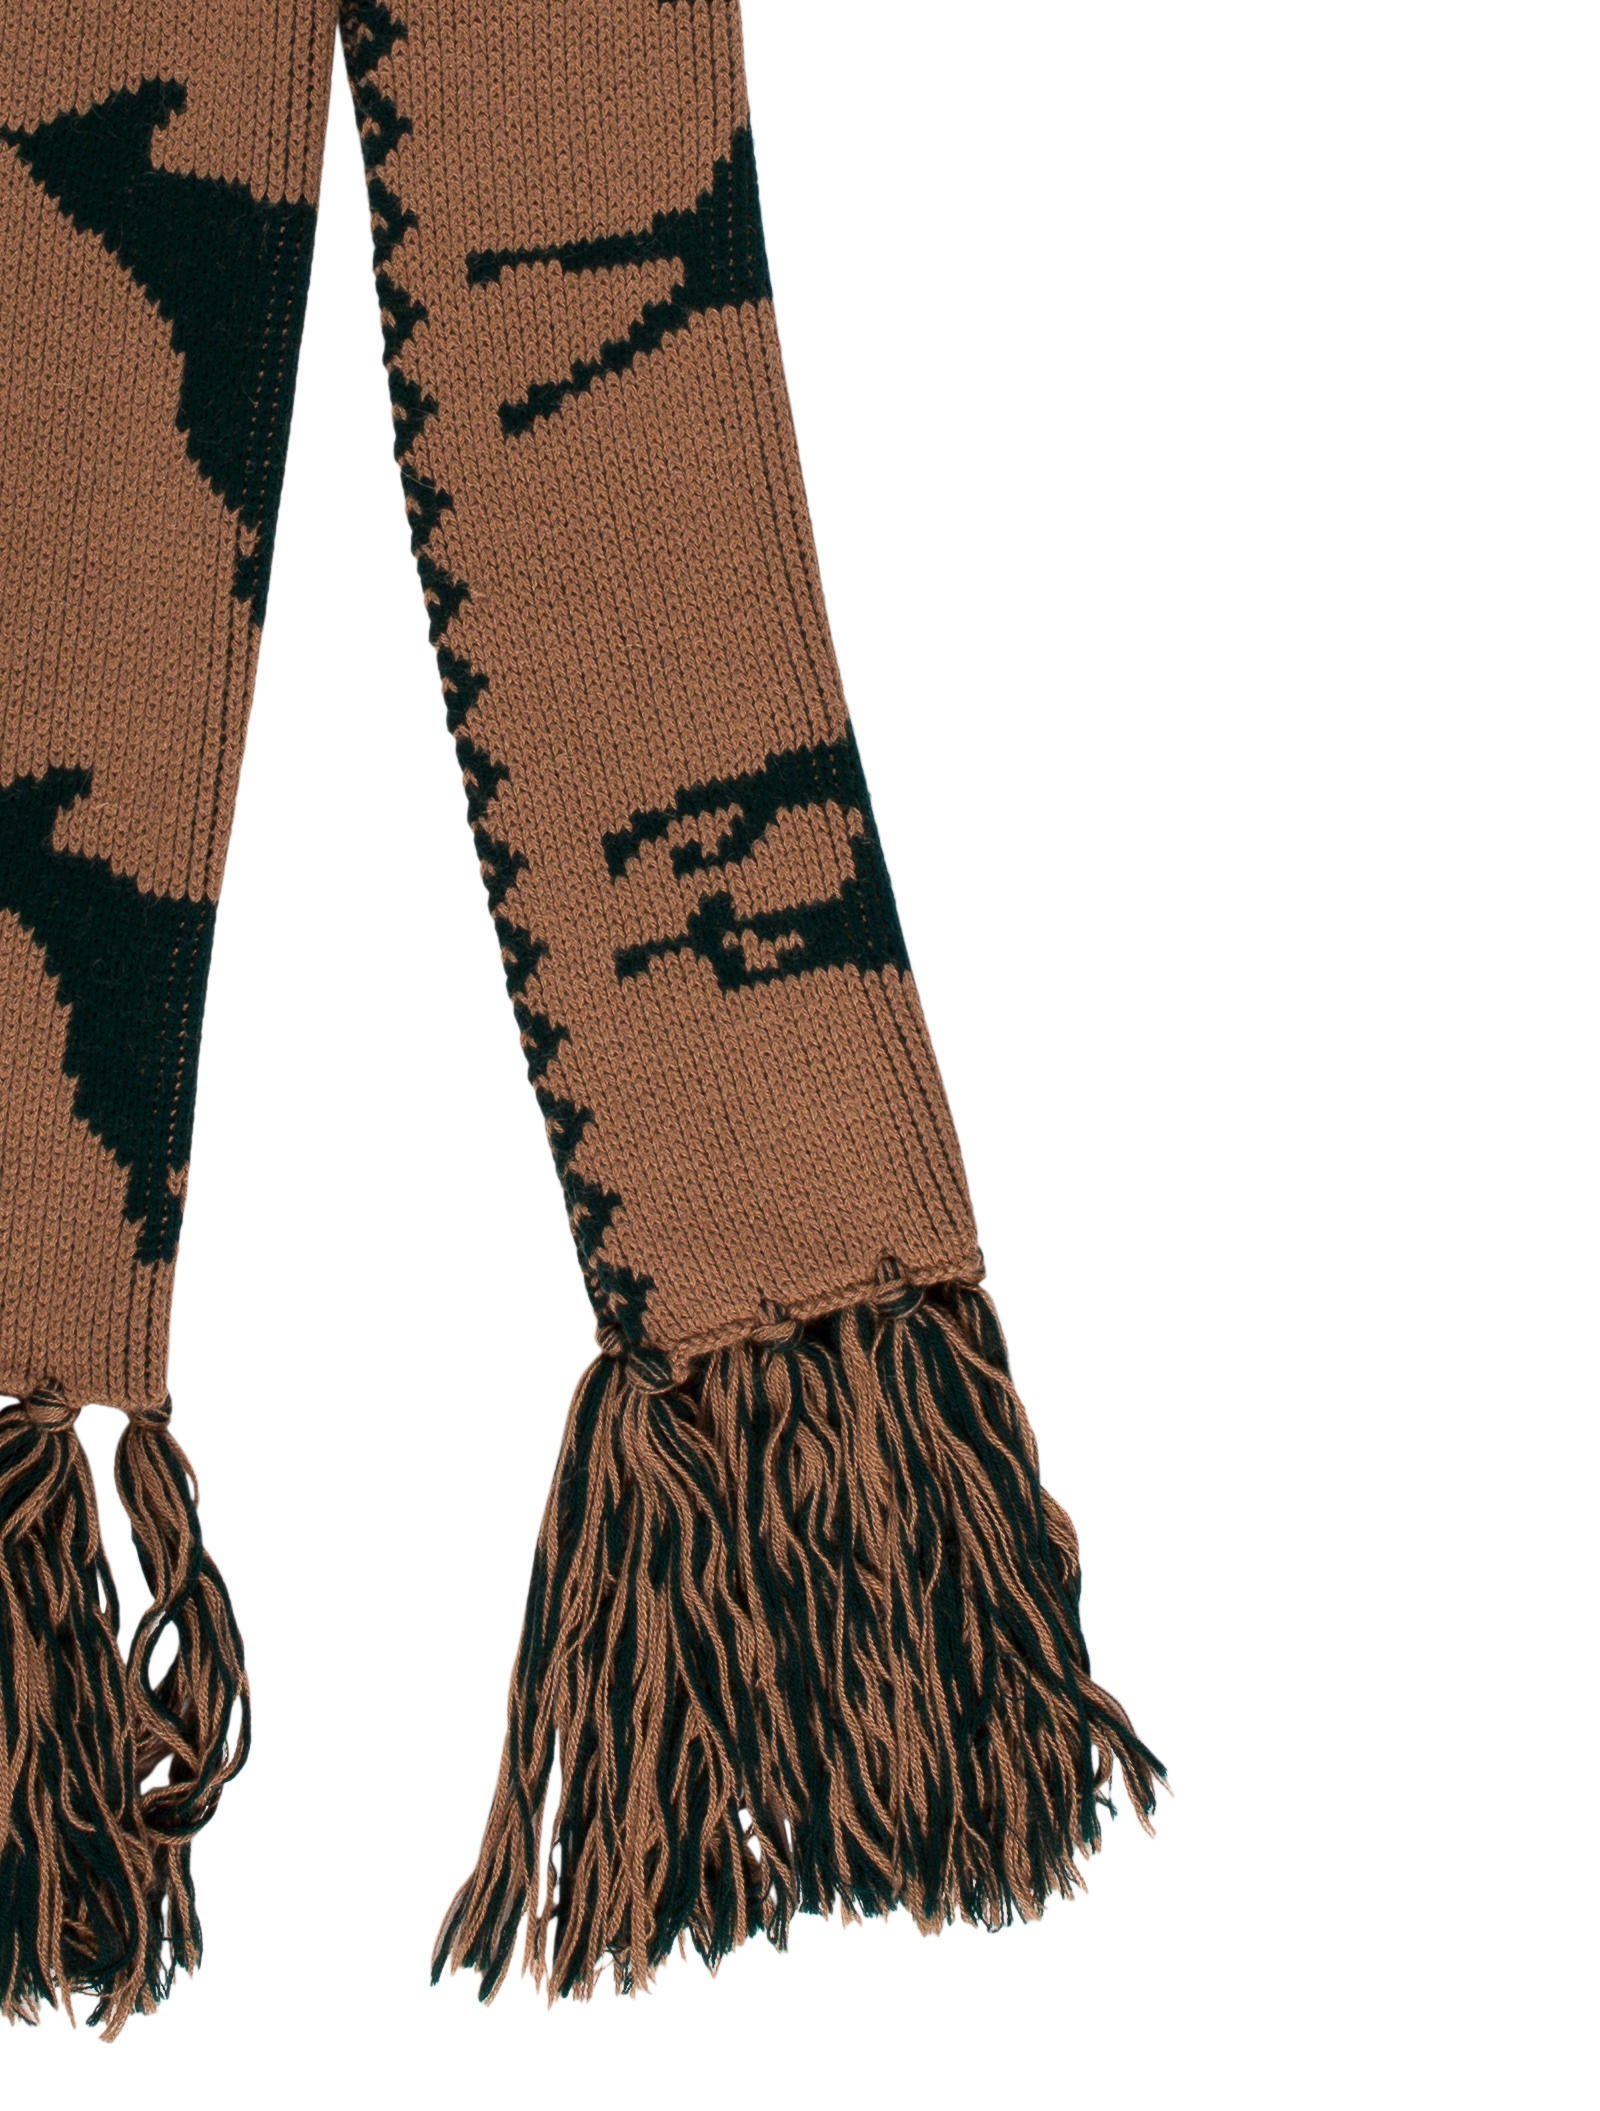 Band of Outsiders Baby Alpaca Scarf - Accessories ...